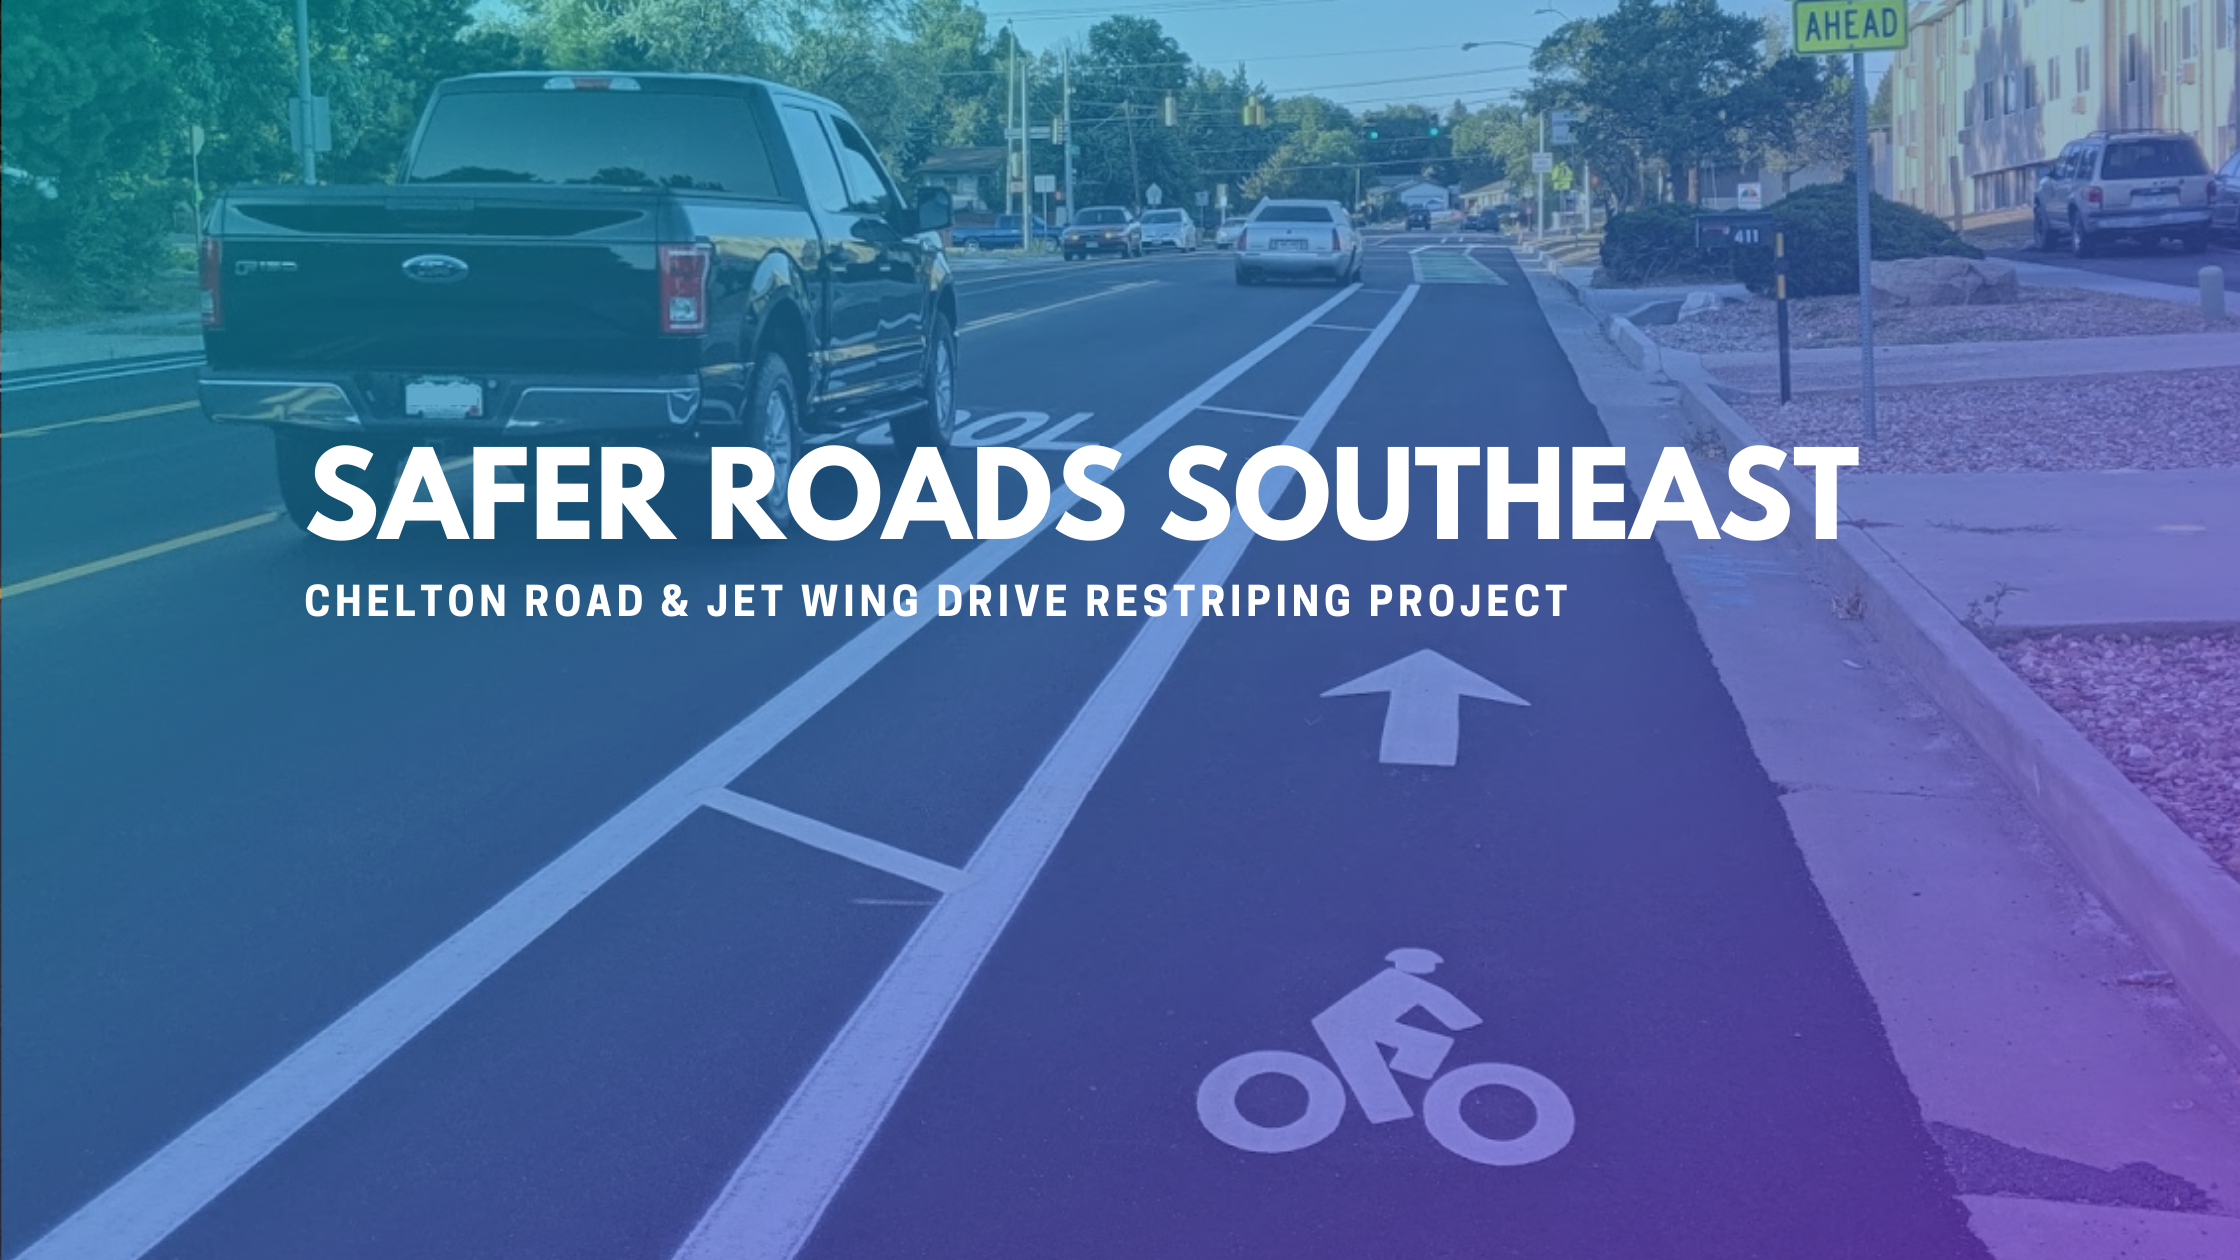 Safer Roads Southeast (1)